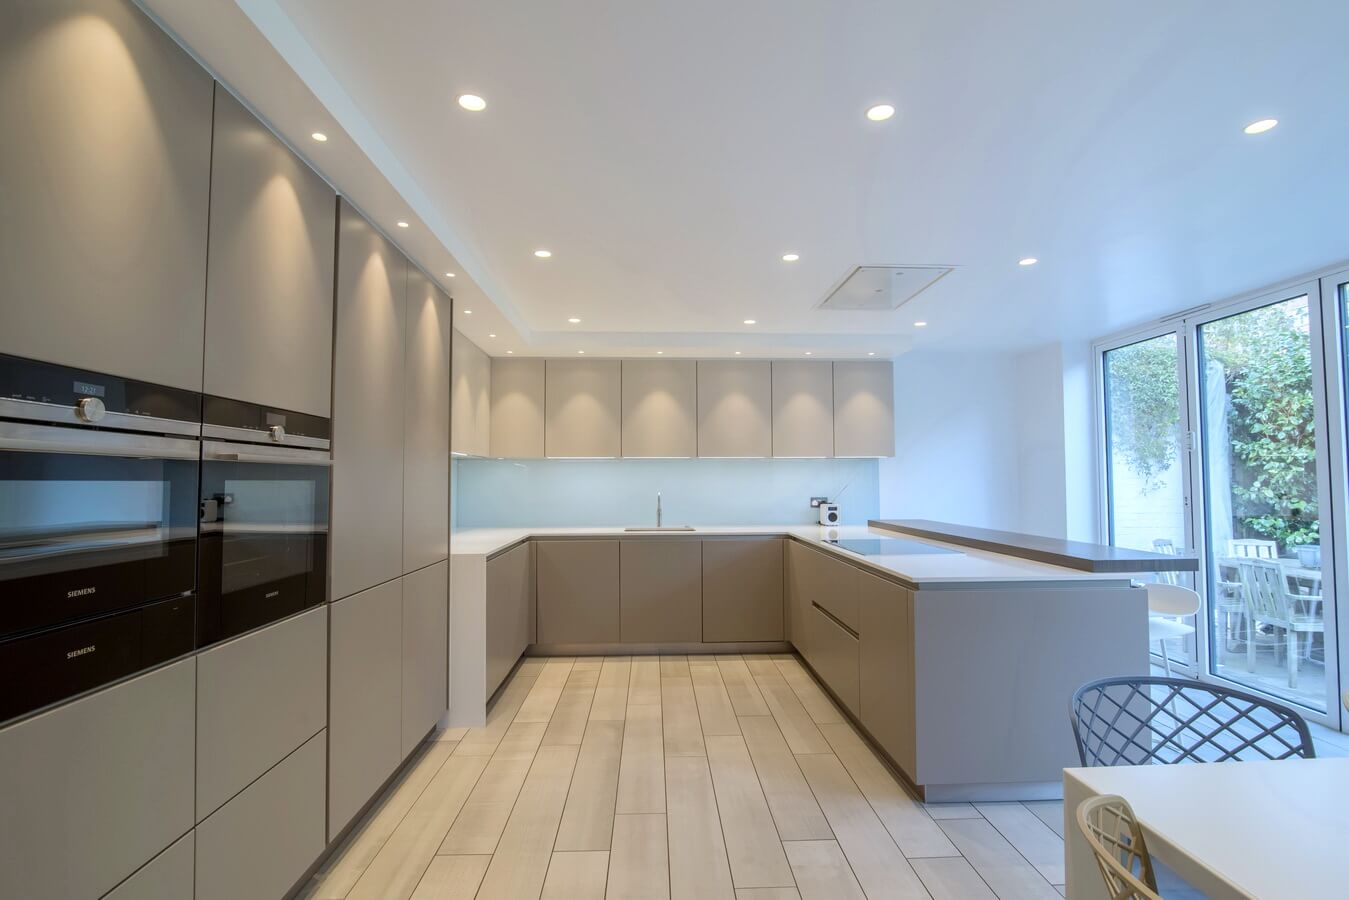 schuller-german-kitchen-london1.jpg